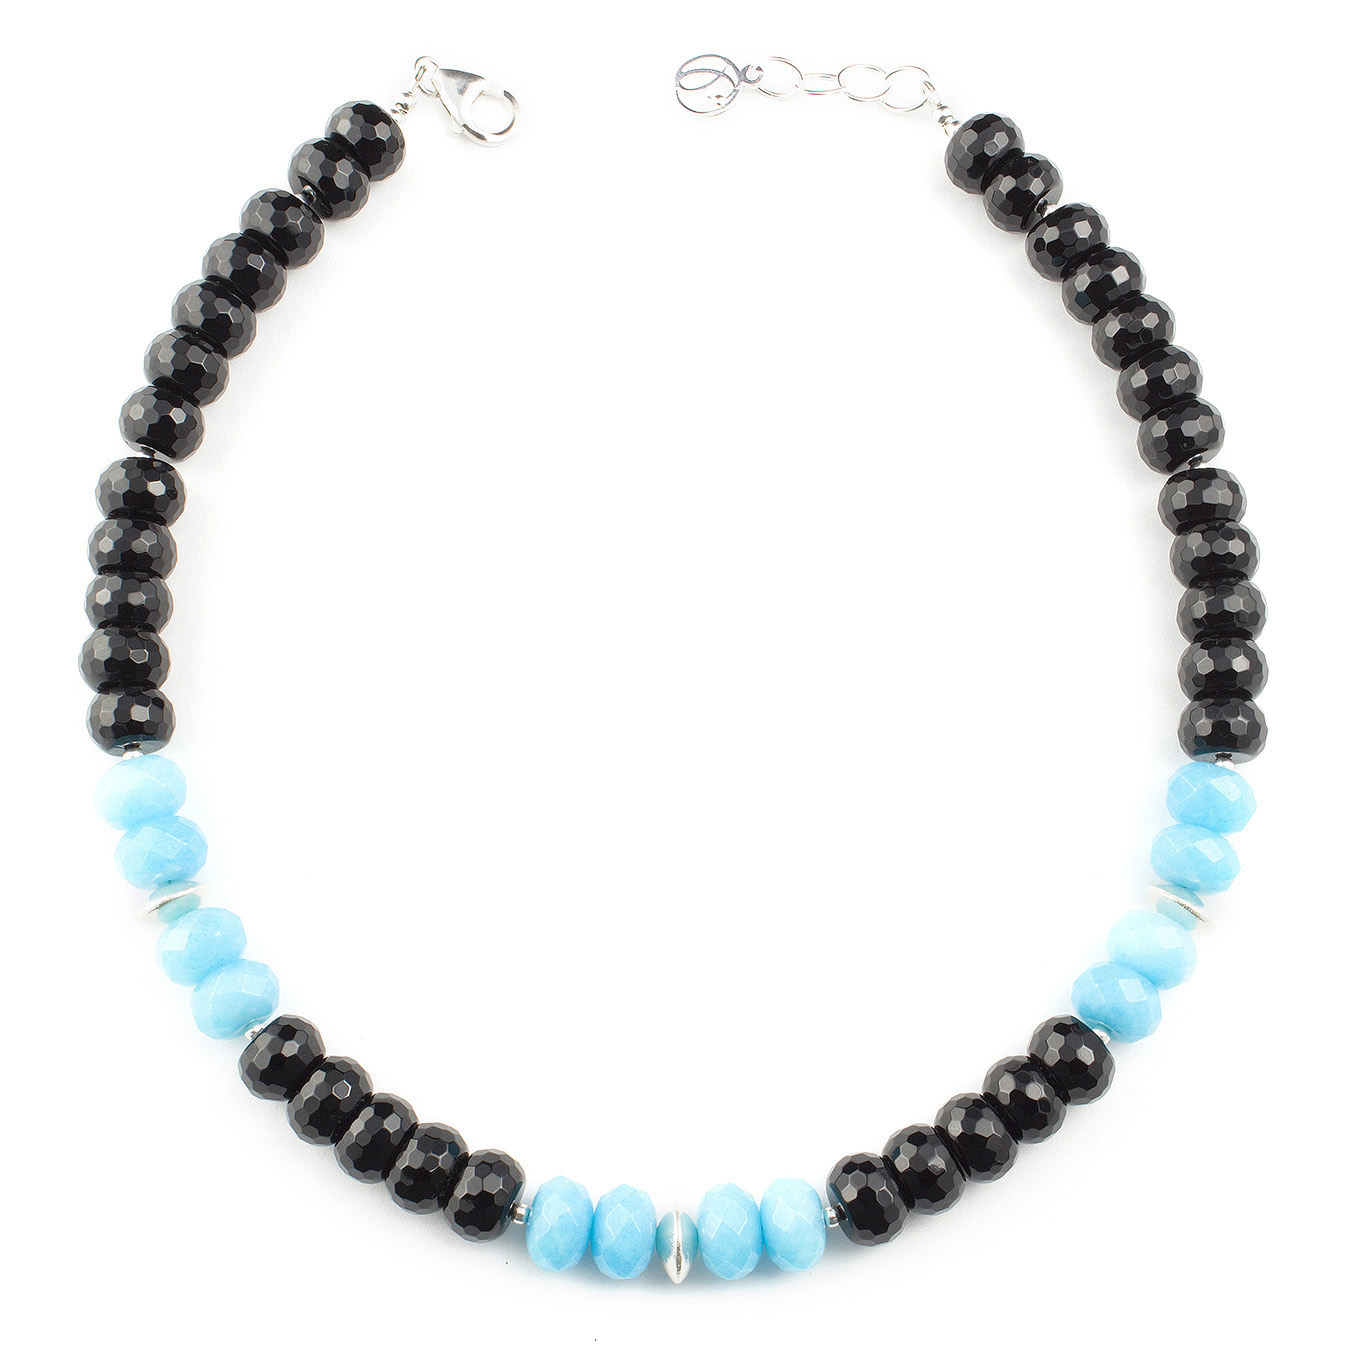 Customizable Thai silver choker necklace using black and blue jade